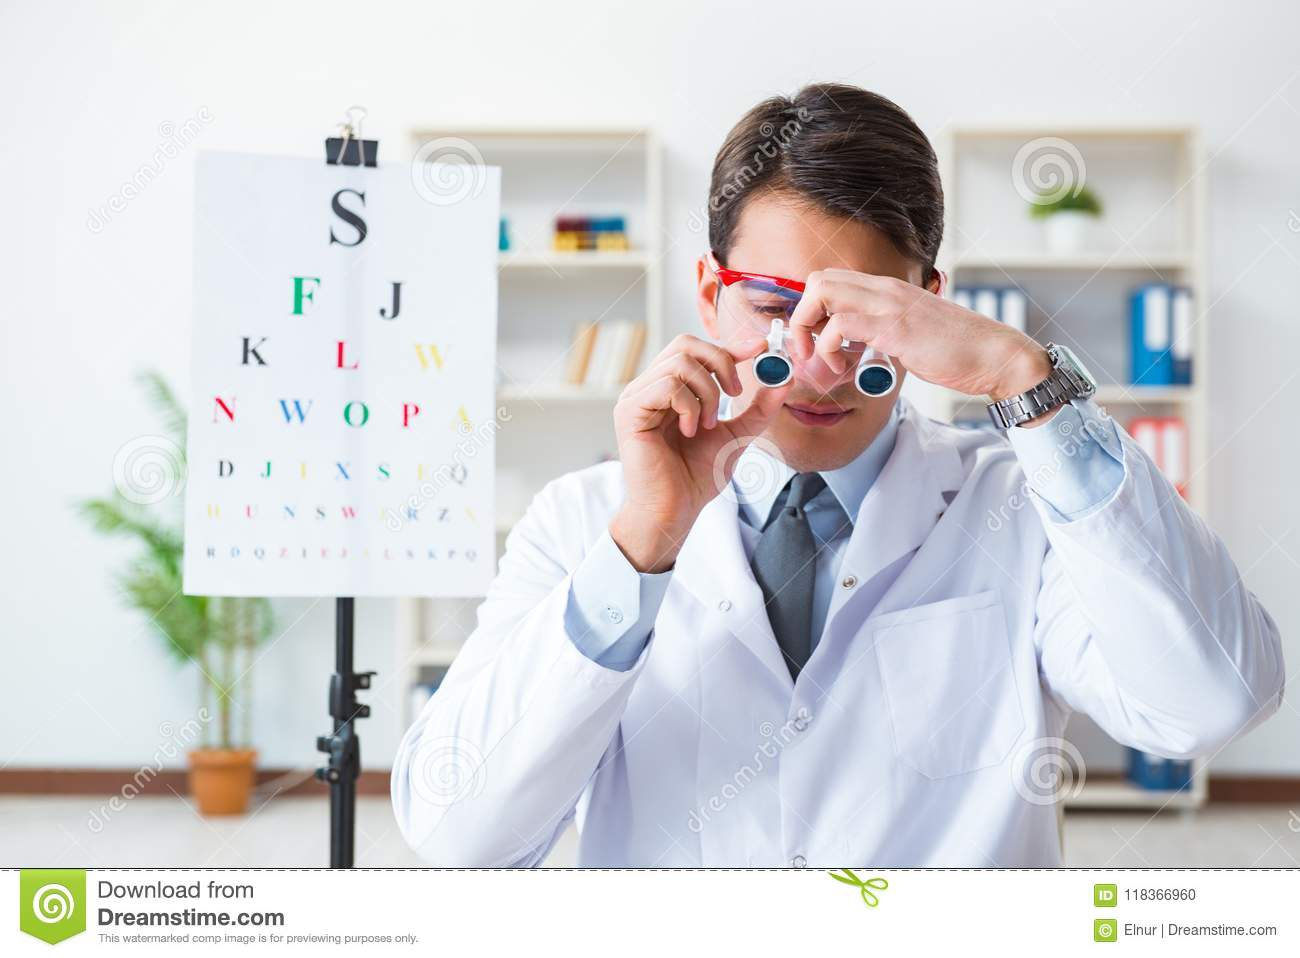 2e81e2624cf The Eye Doctor In Eyecare Concept In Hospital Stock Photo - Image of ...